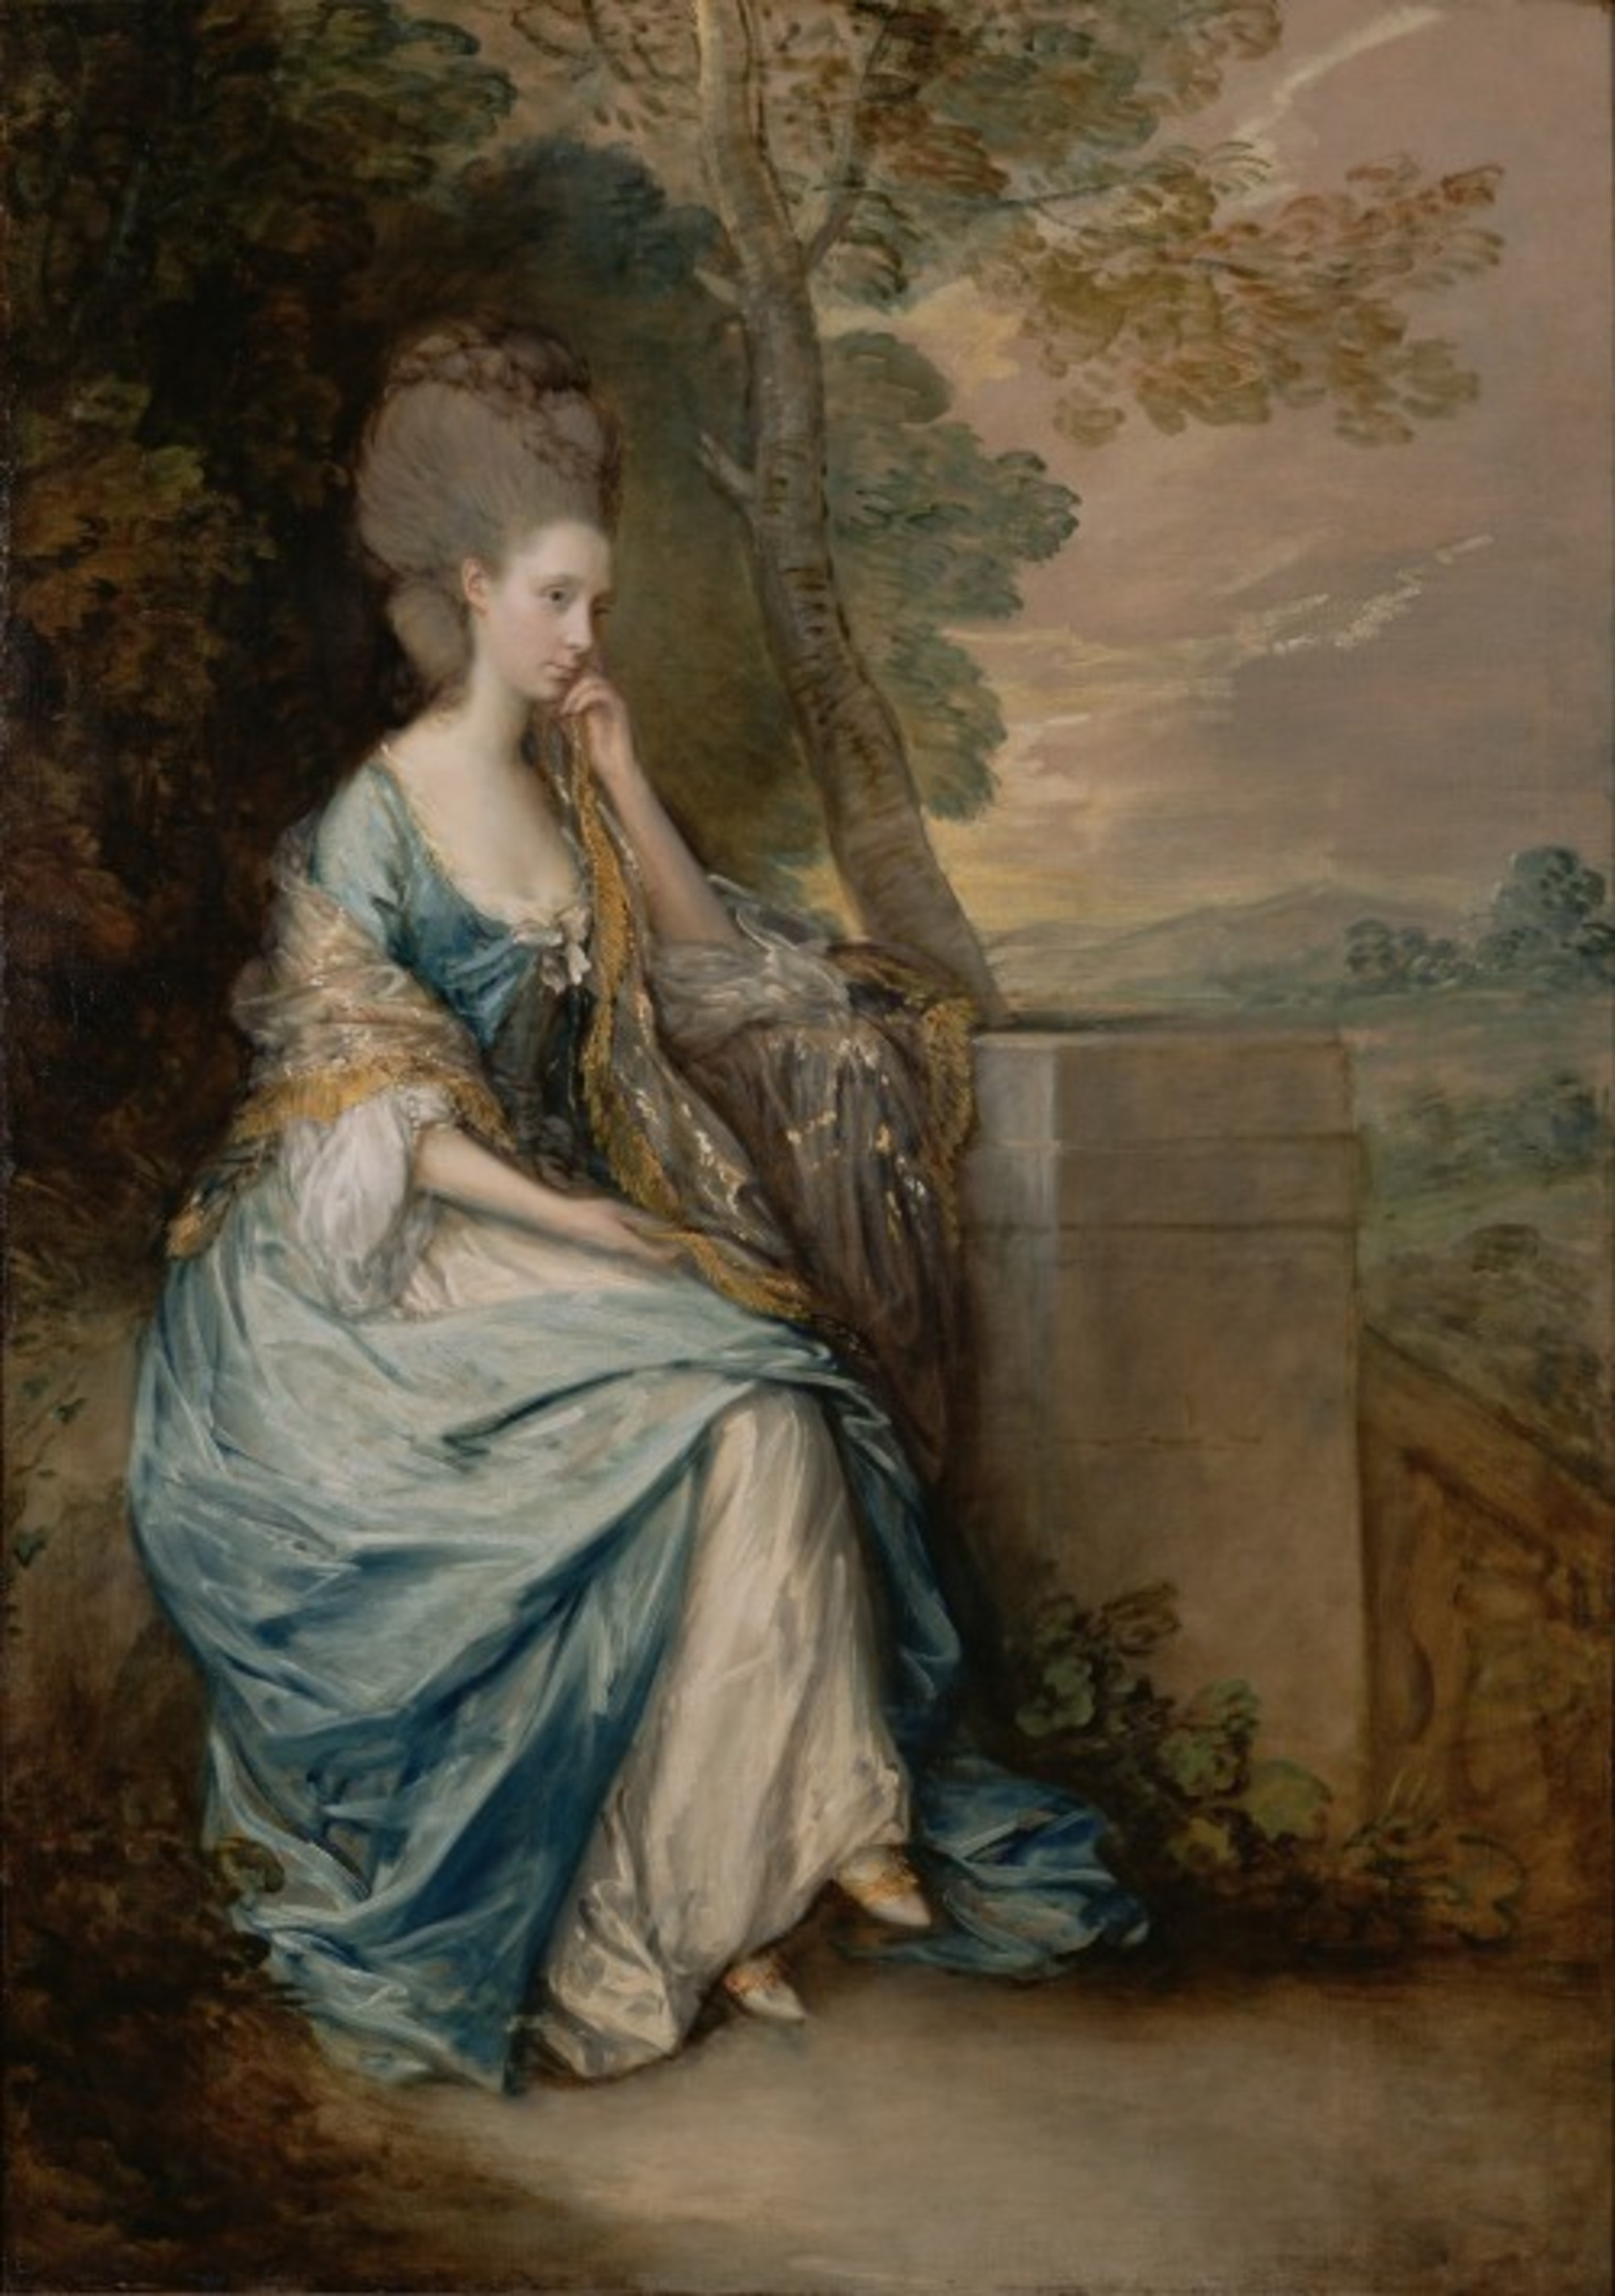 Thomas_Gainsborough_English_-_Portrait_of_Anne_Countess_of_Chesterfield_-_Google_Art_Project.jpg